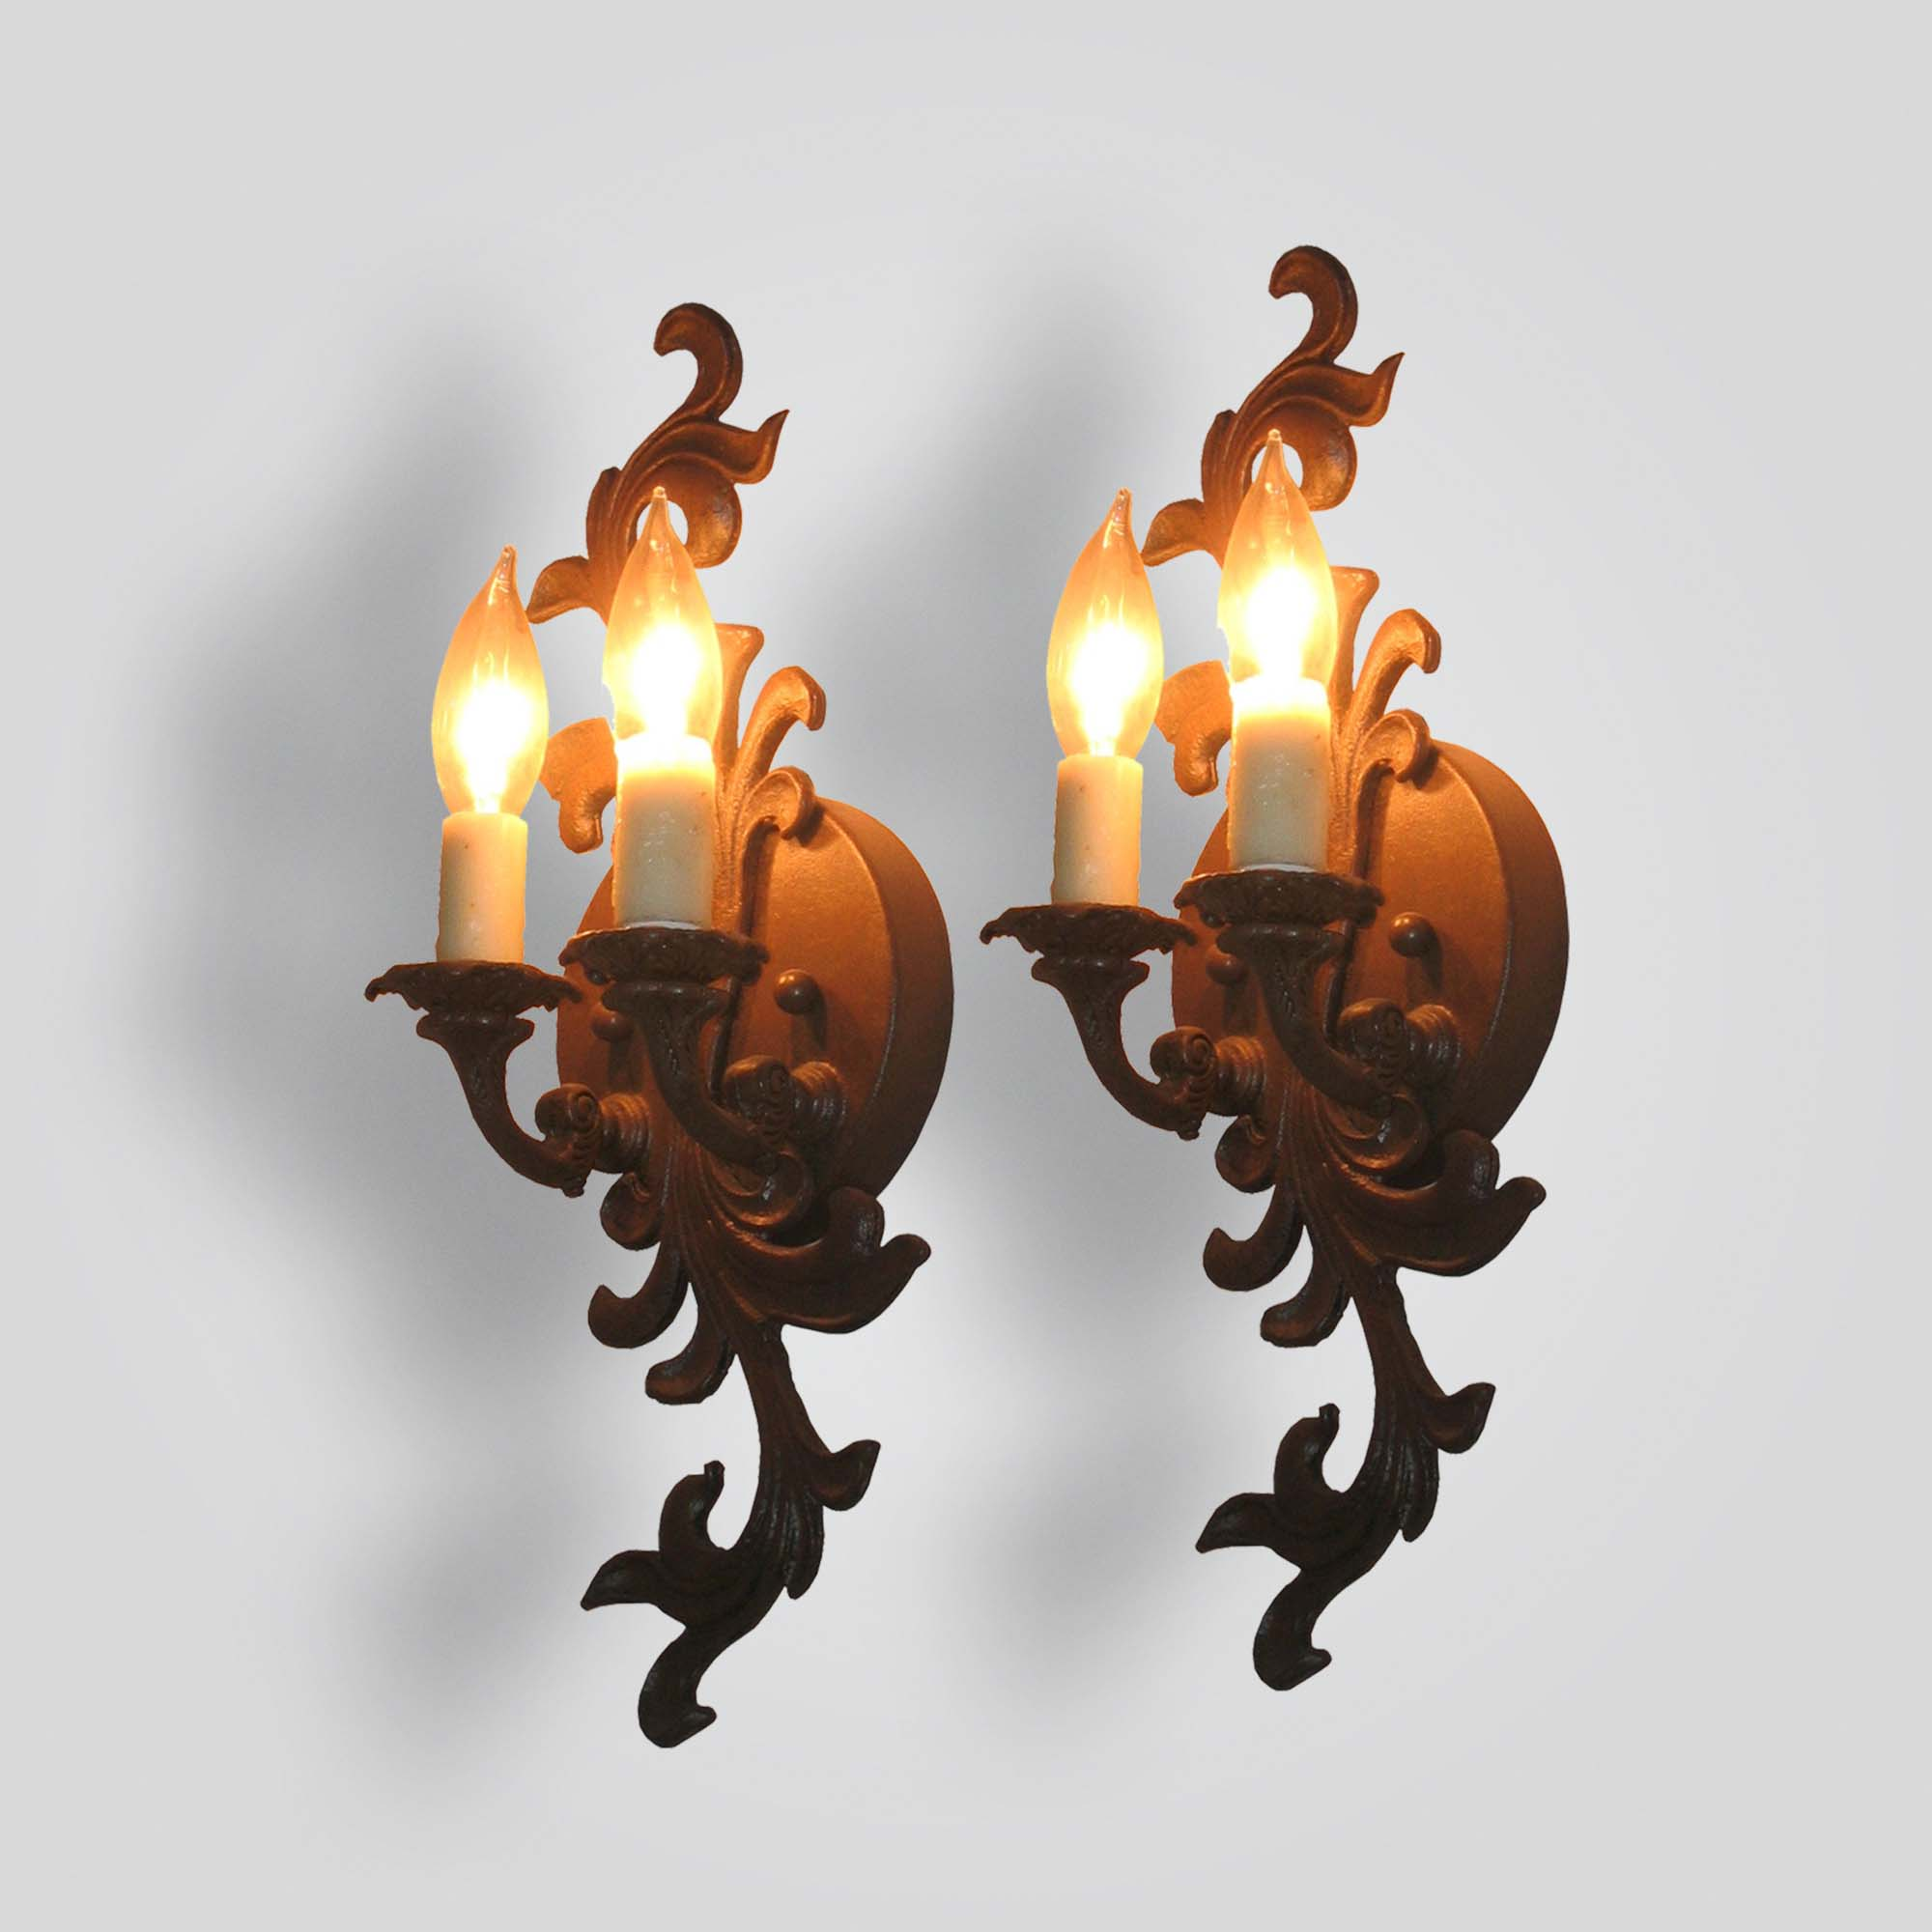 5262-cb2-ir-s-fg-forged-leaf-sconce – ADG Lighting Collection